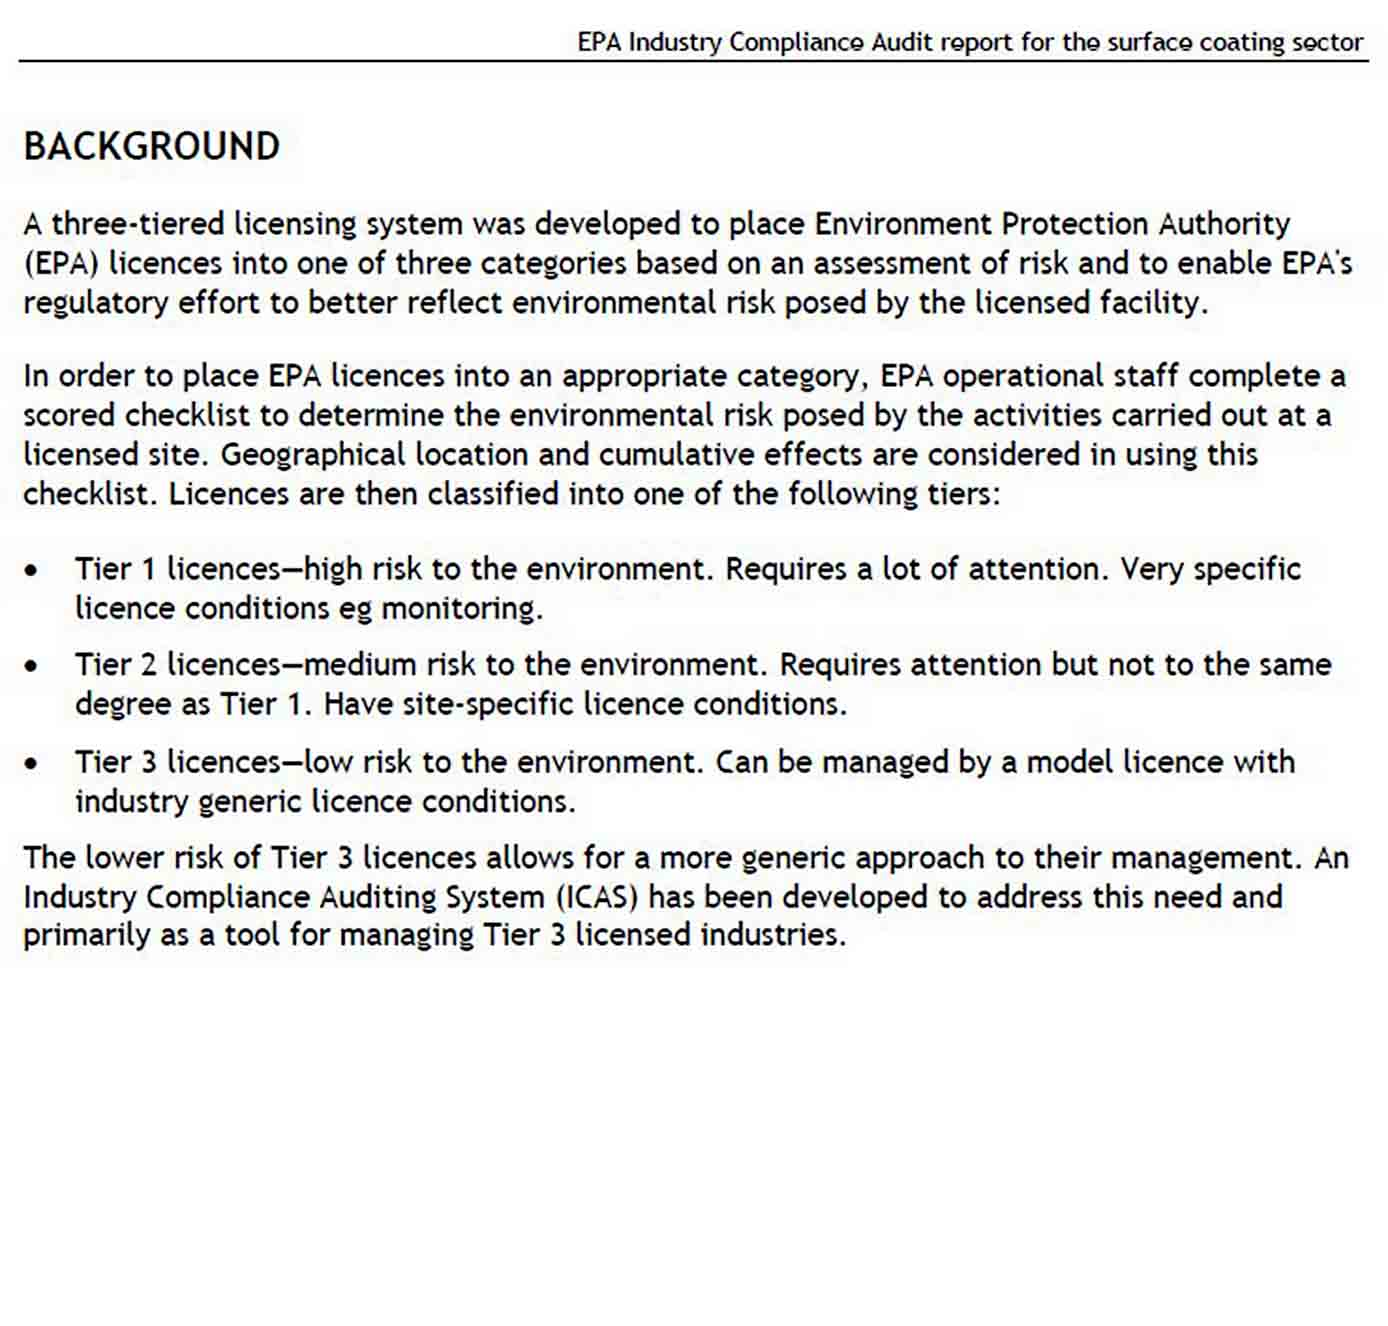 Industry Compliance Audit Report sample